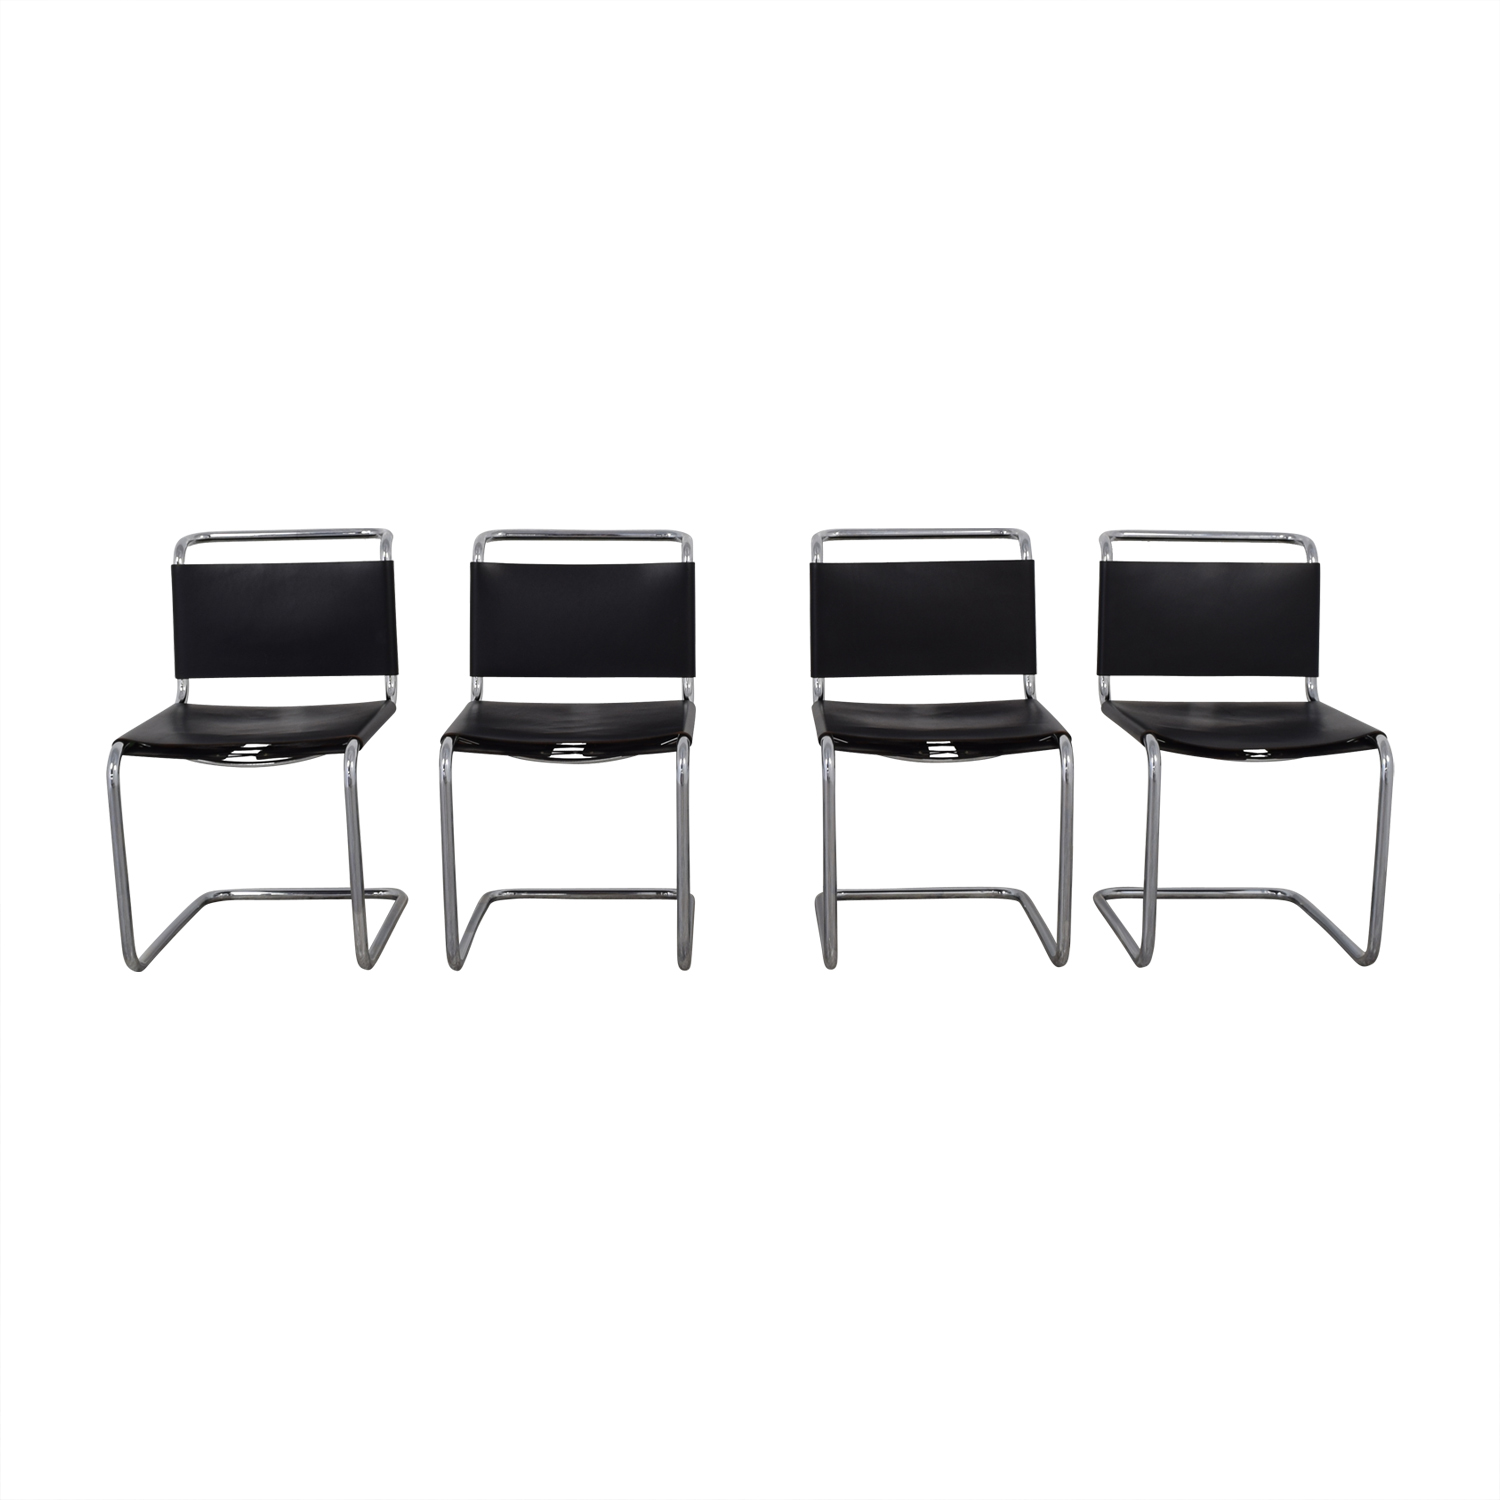 Knoll Spoleto Black Chairs / Chairs